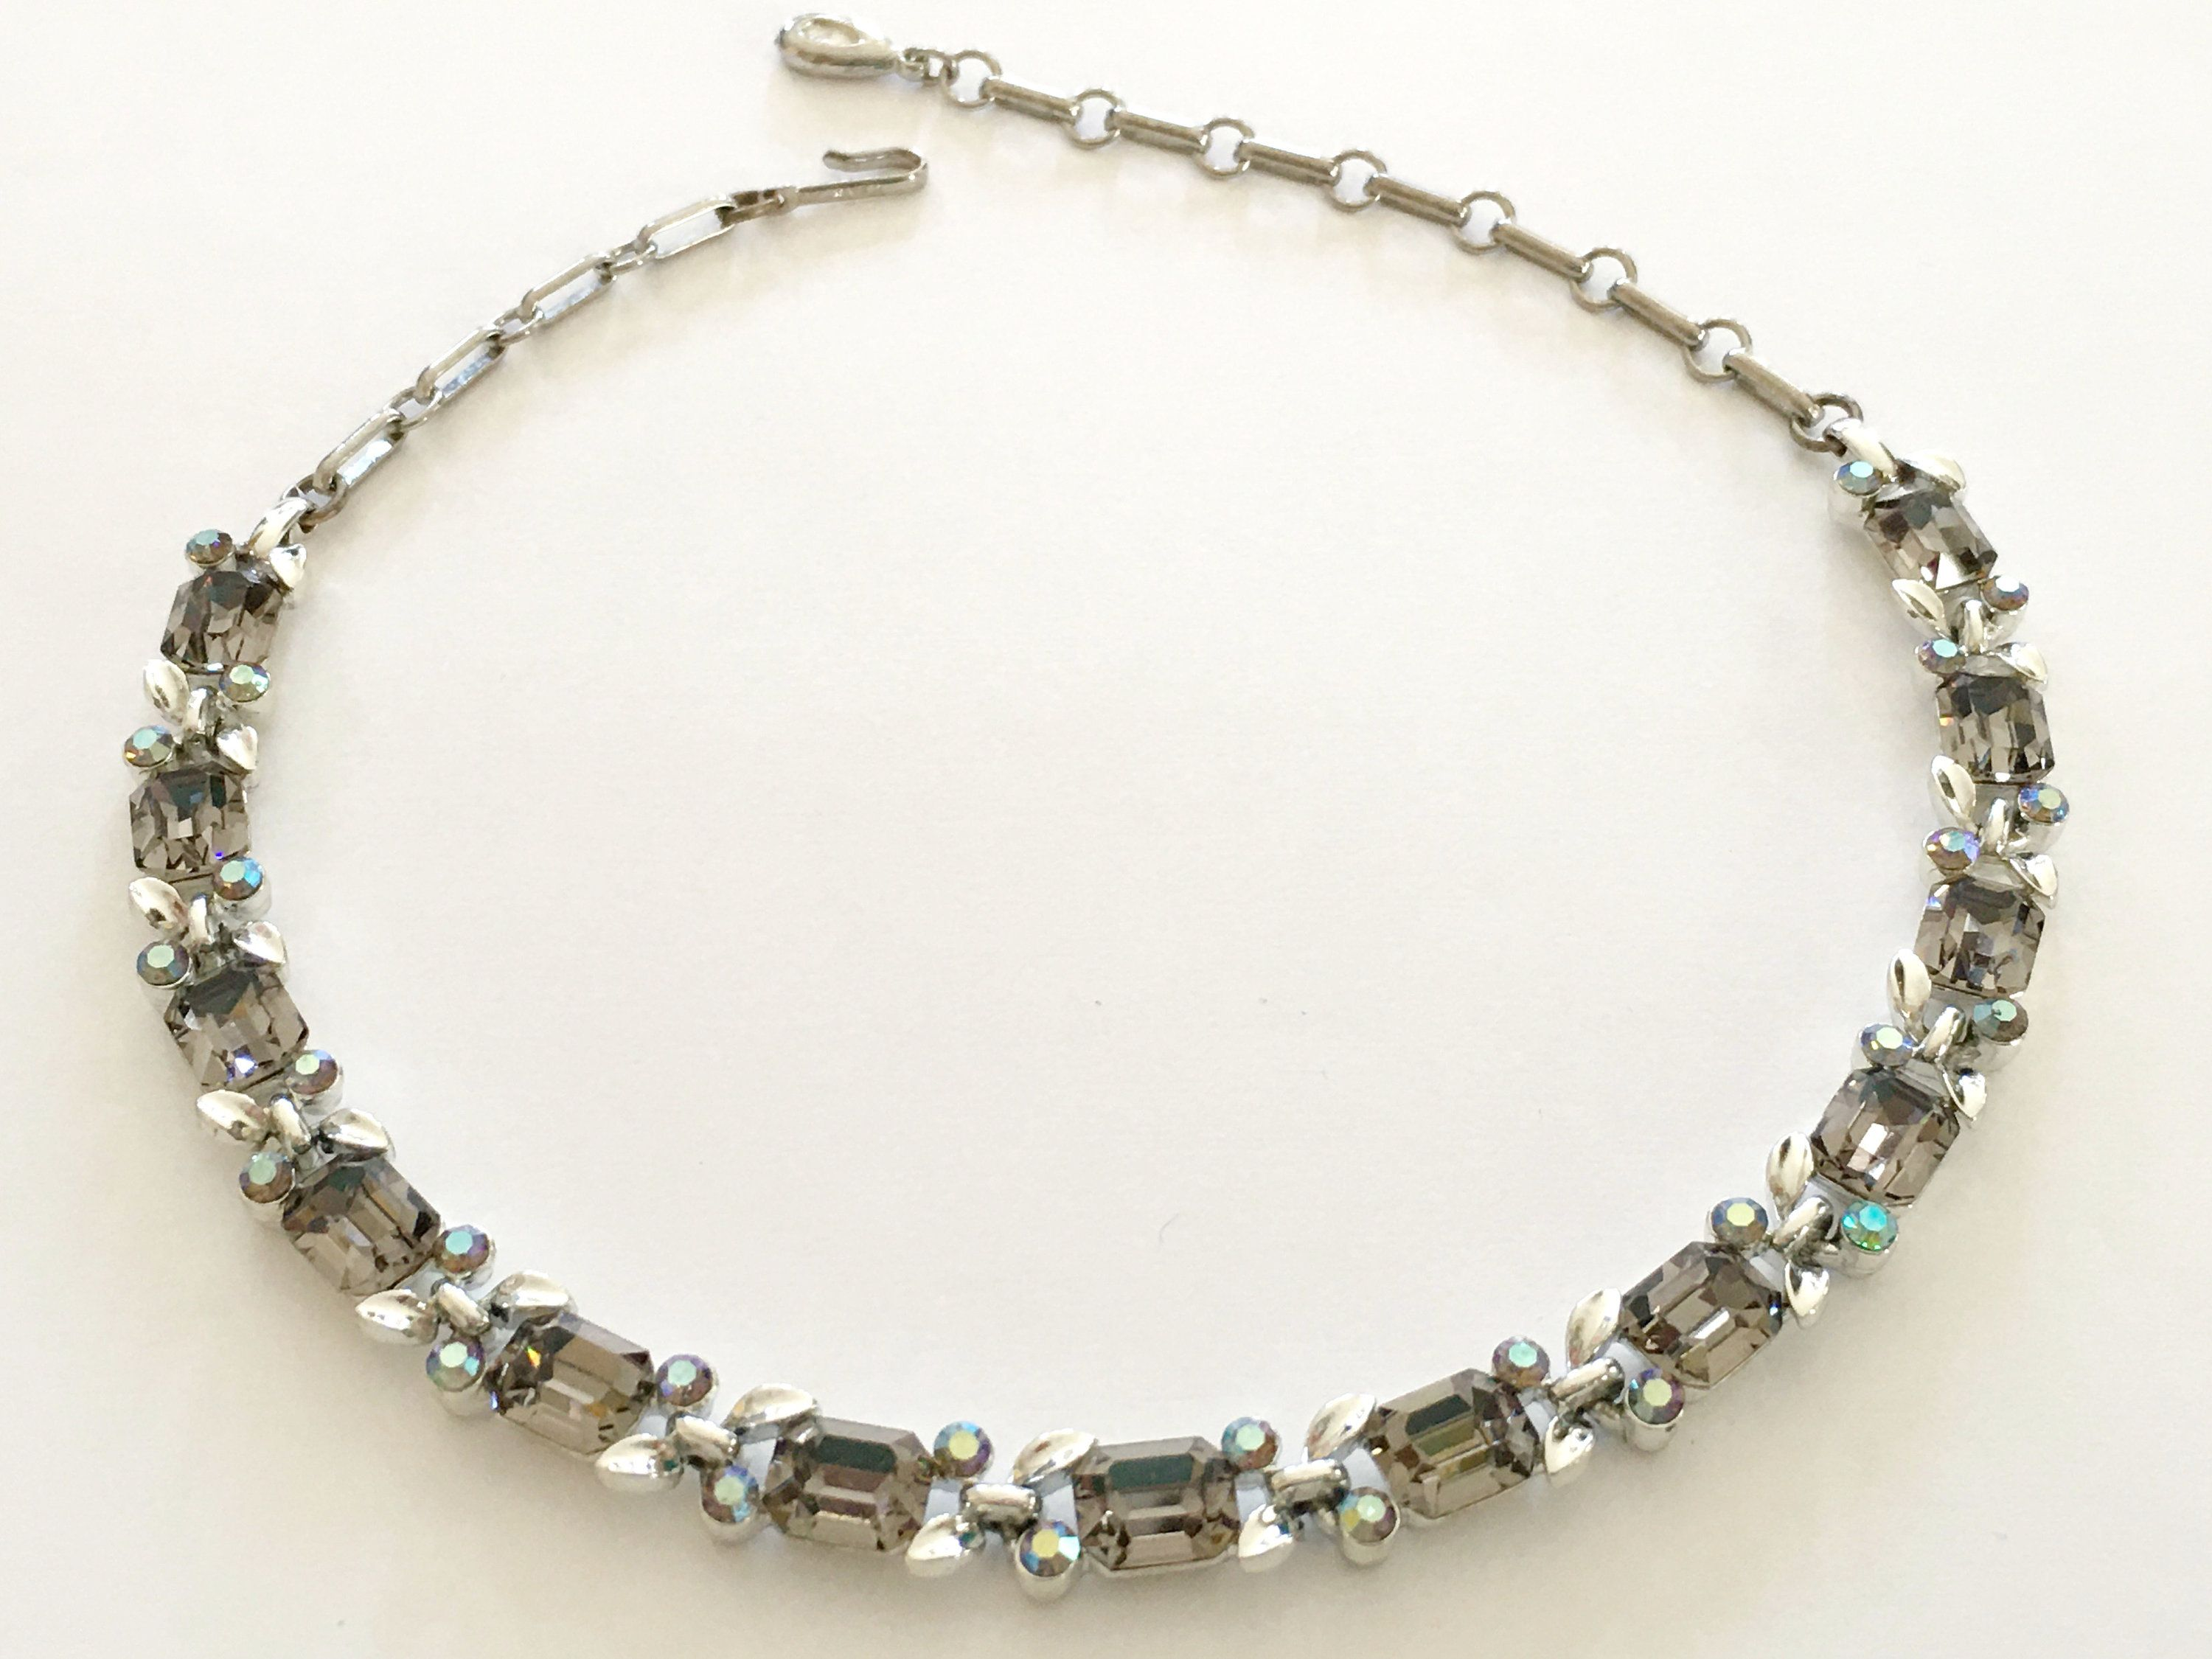 Rhinestone Necklace, 60s Vintage Jewelry, Lisner Vintage Necklace, Chunky Emerald Cut Choker, Silver Links, Smoke Gray Stones, Riviere Style